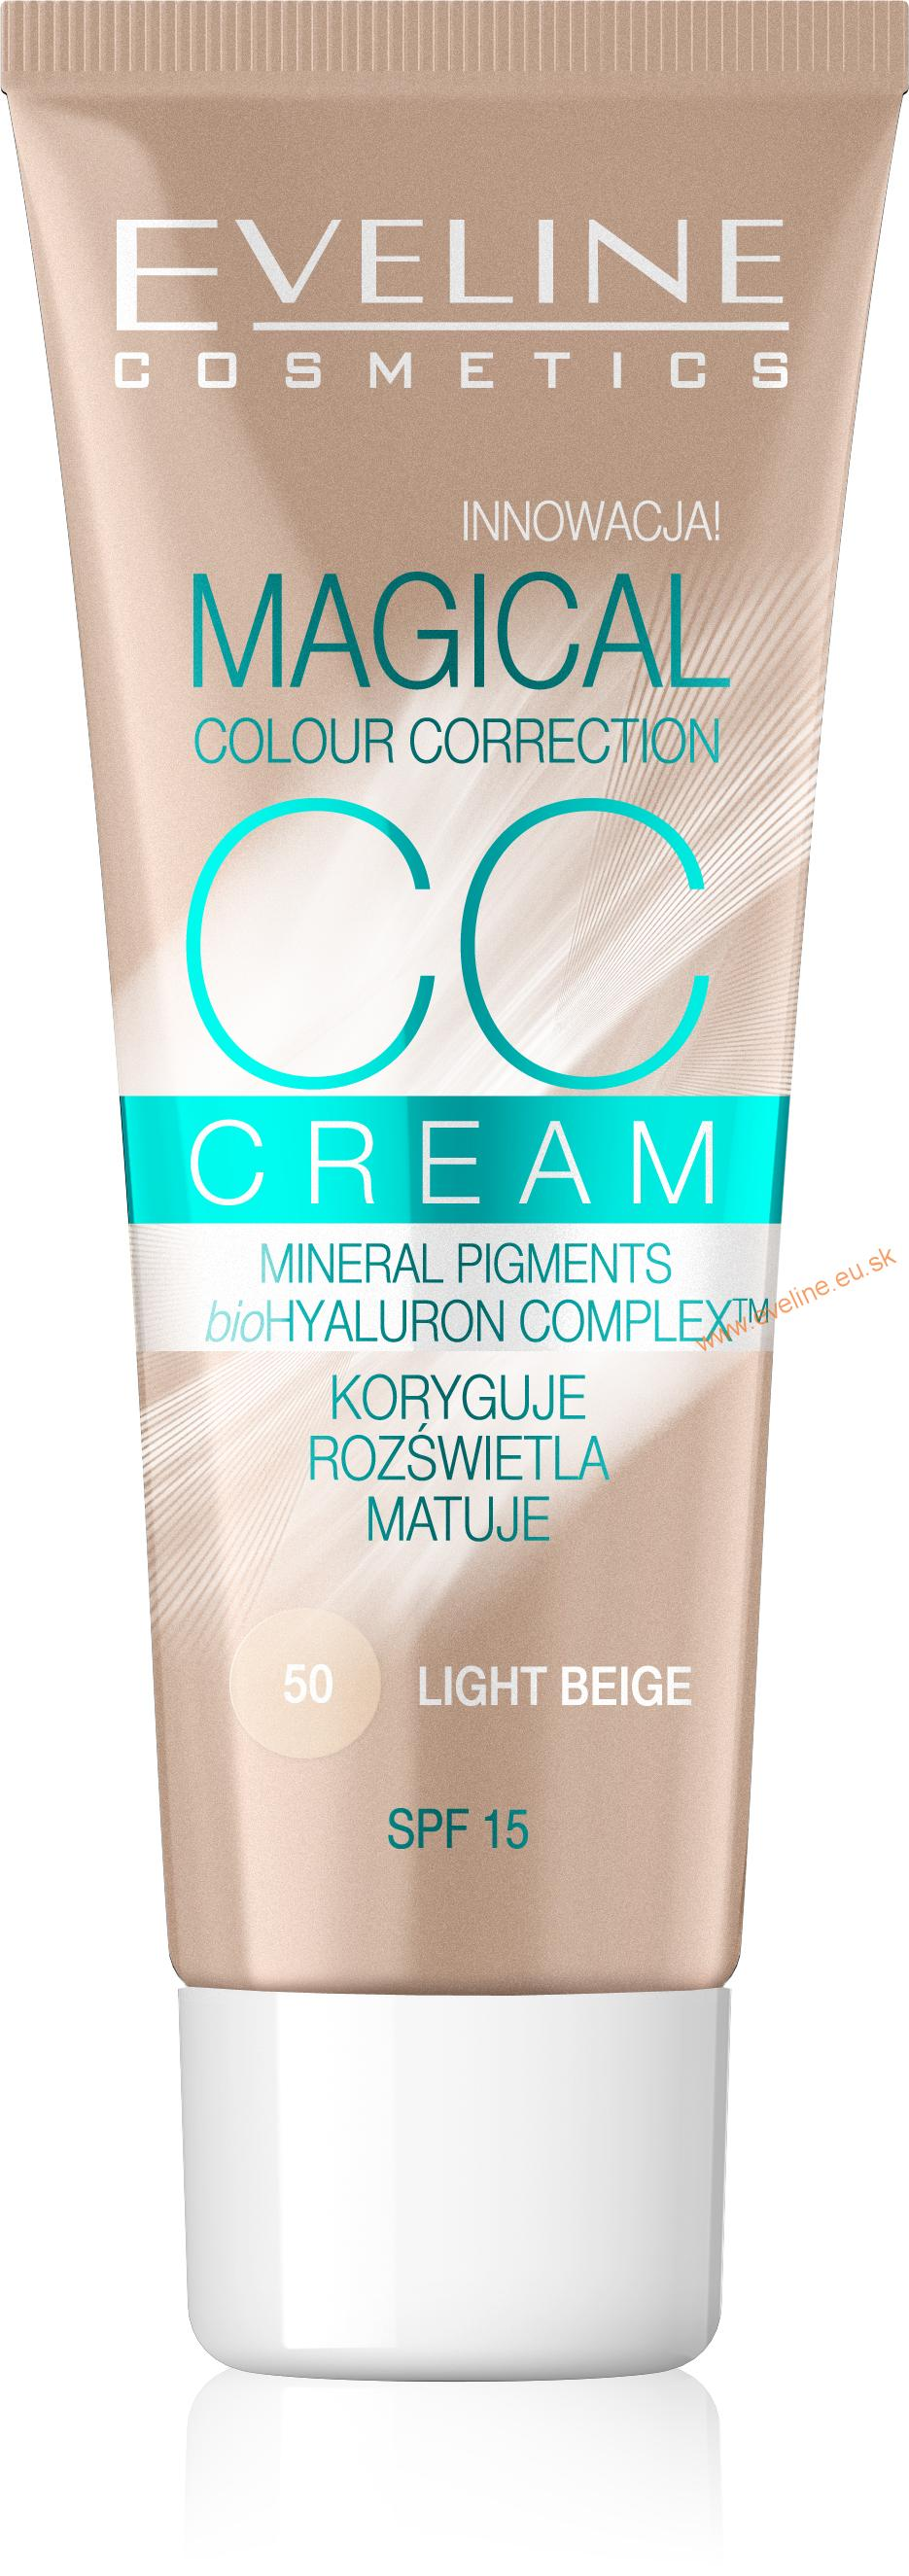 EVELINE MAKE UP - Magical CC Krém 50 light beige